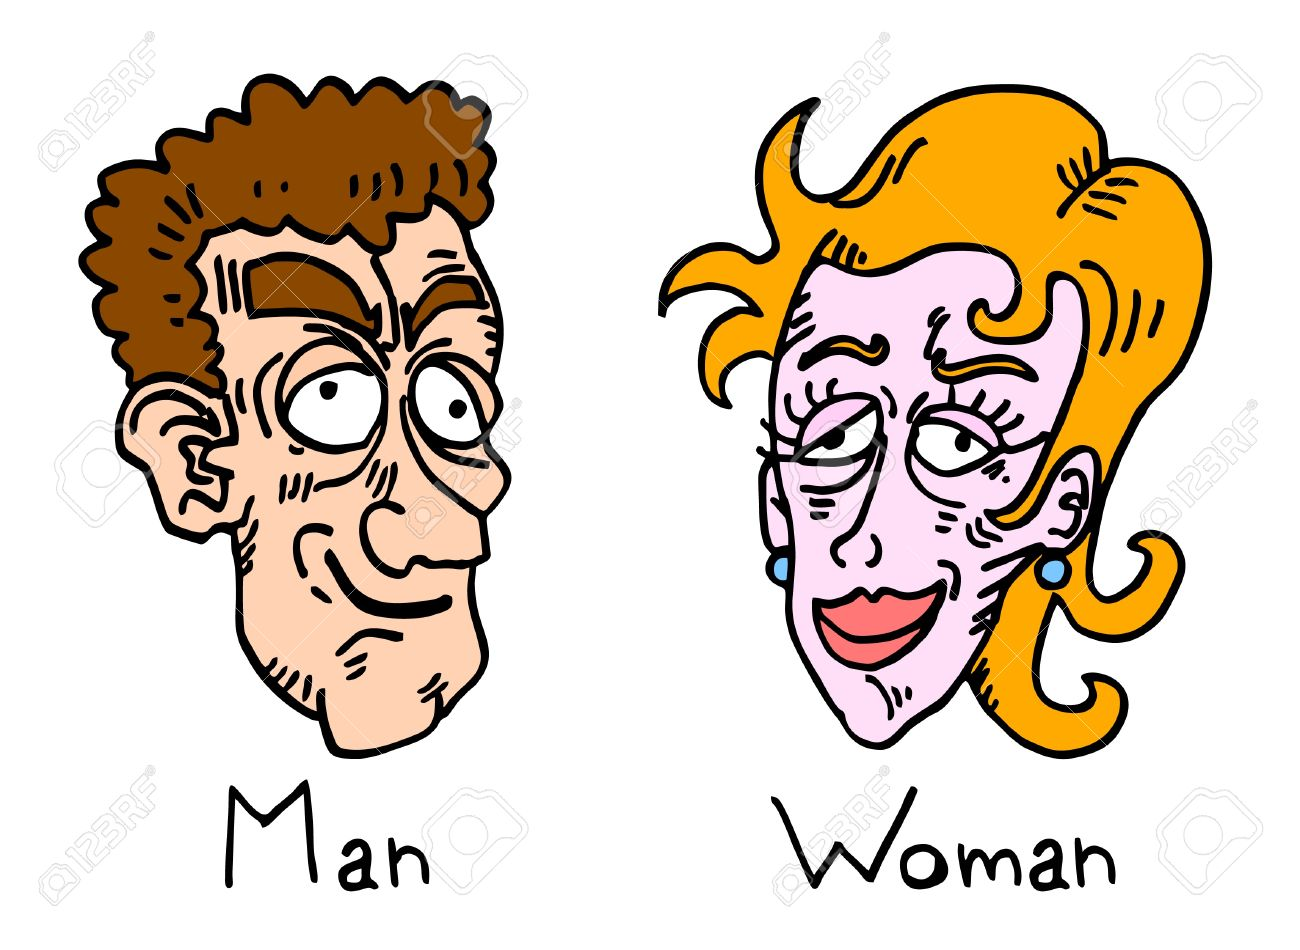 1300x950 Comic Draw Of Ugly Man And Woman Royalty Free Cliparts, Vectors